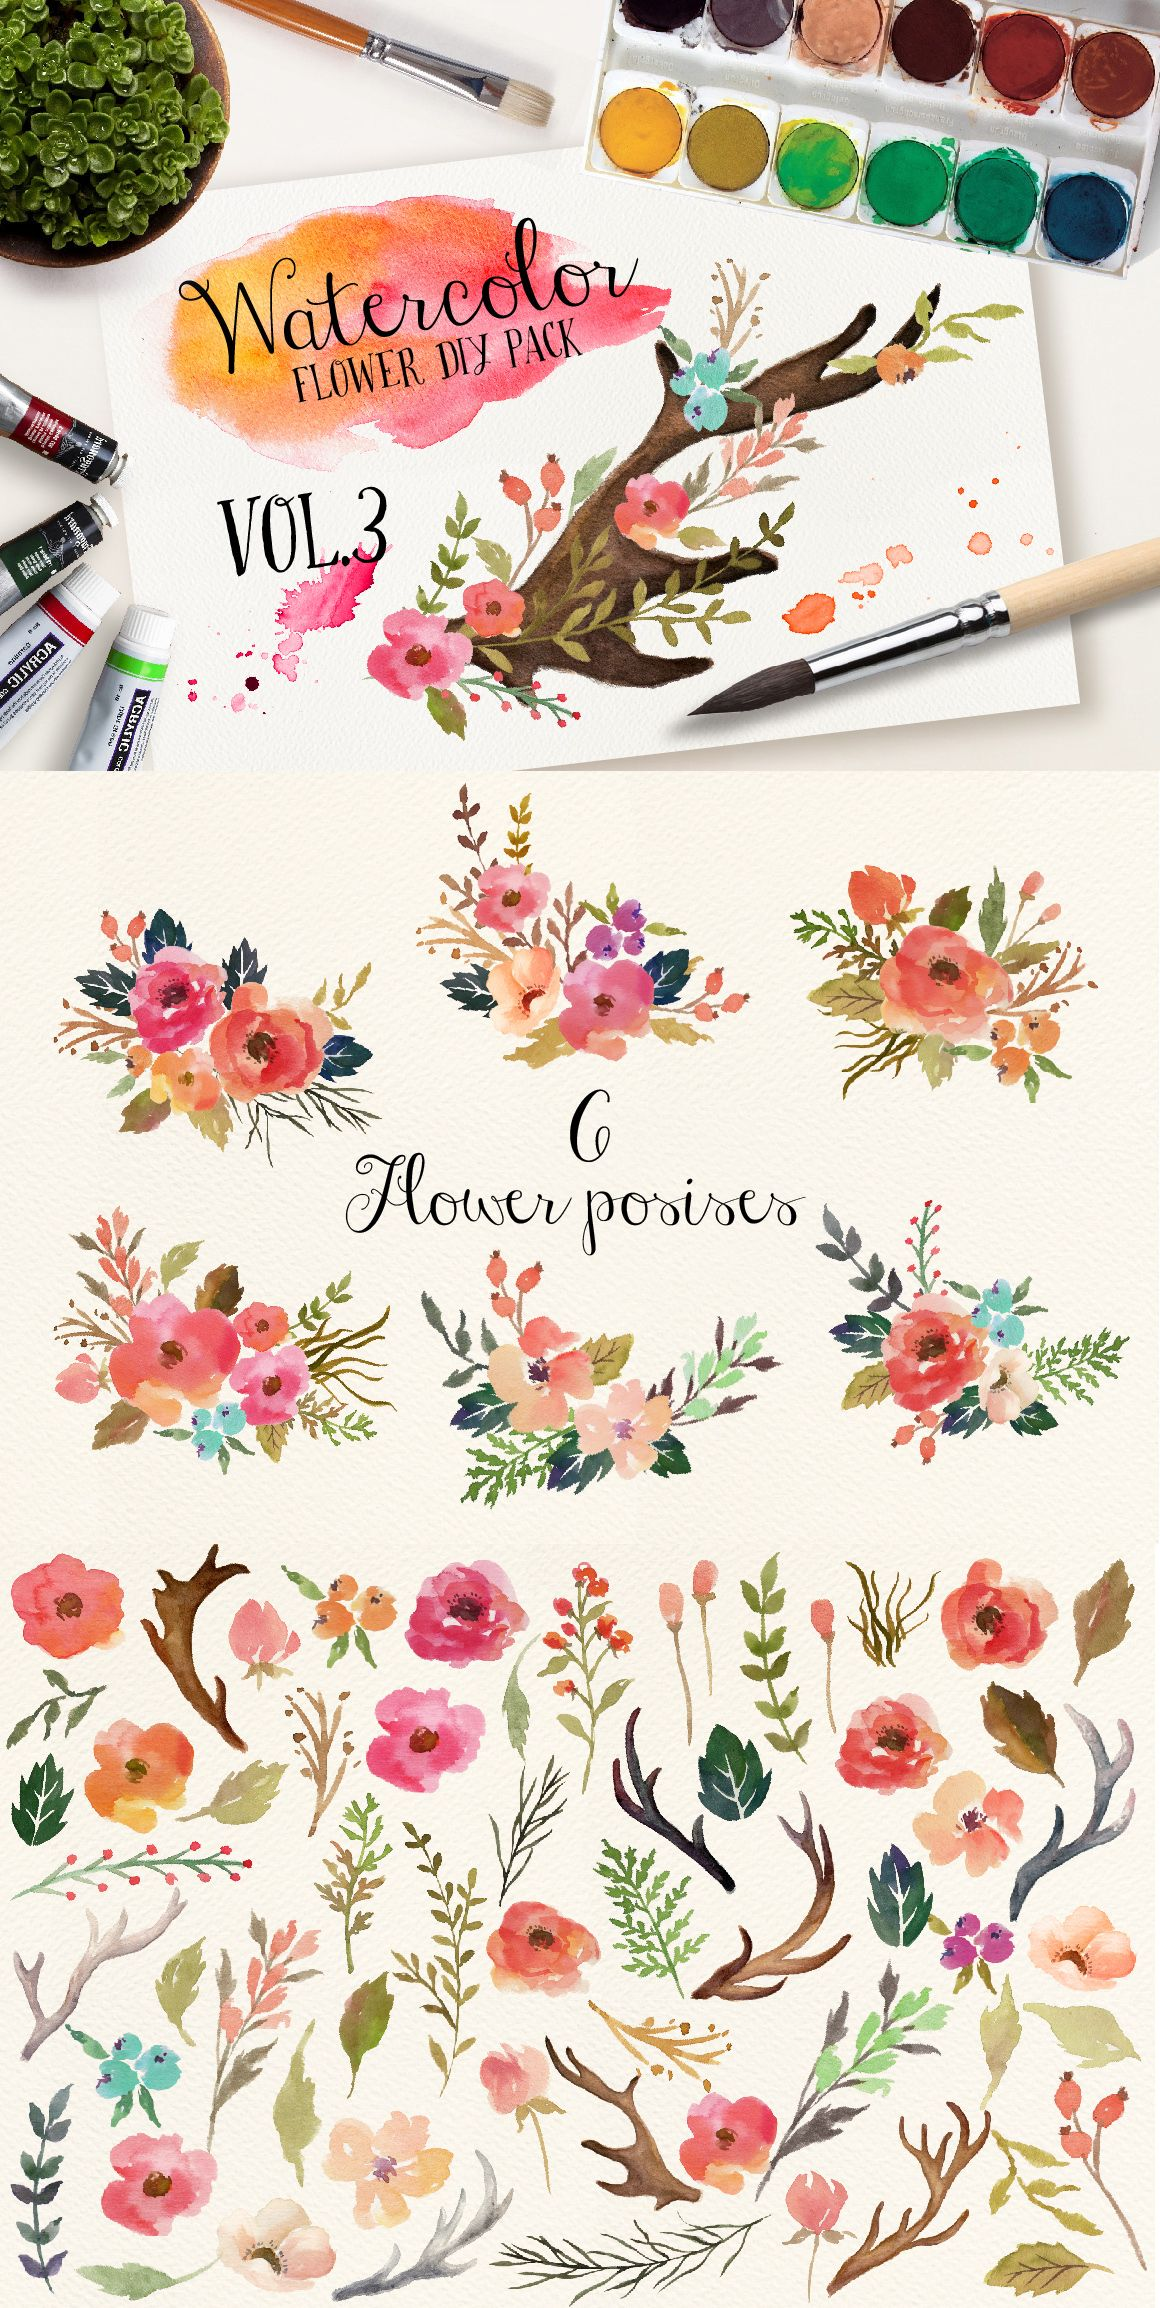 Watercolor Flower Diy Pack Vol 3 Dessin Fleur Dessin Botanique